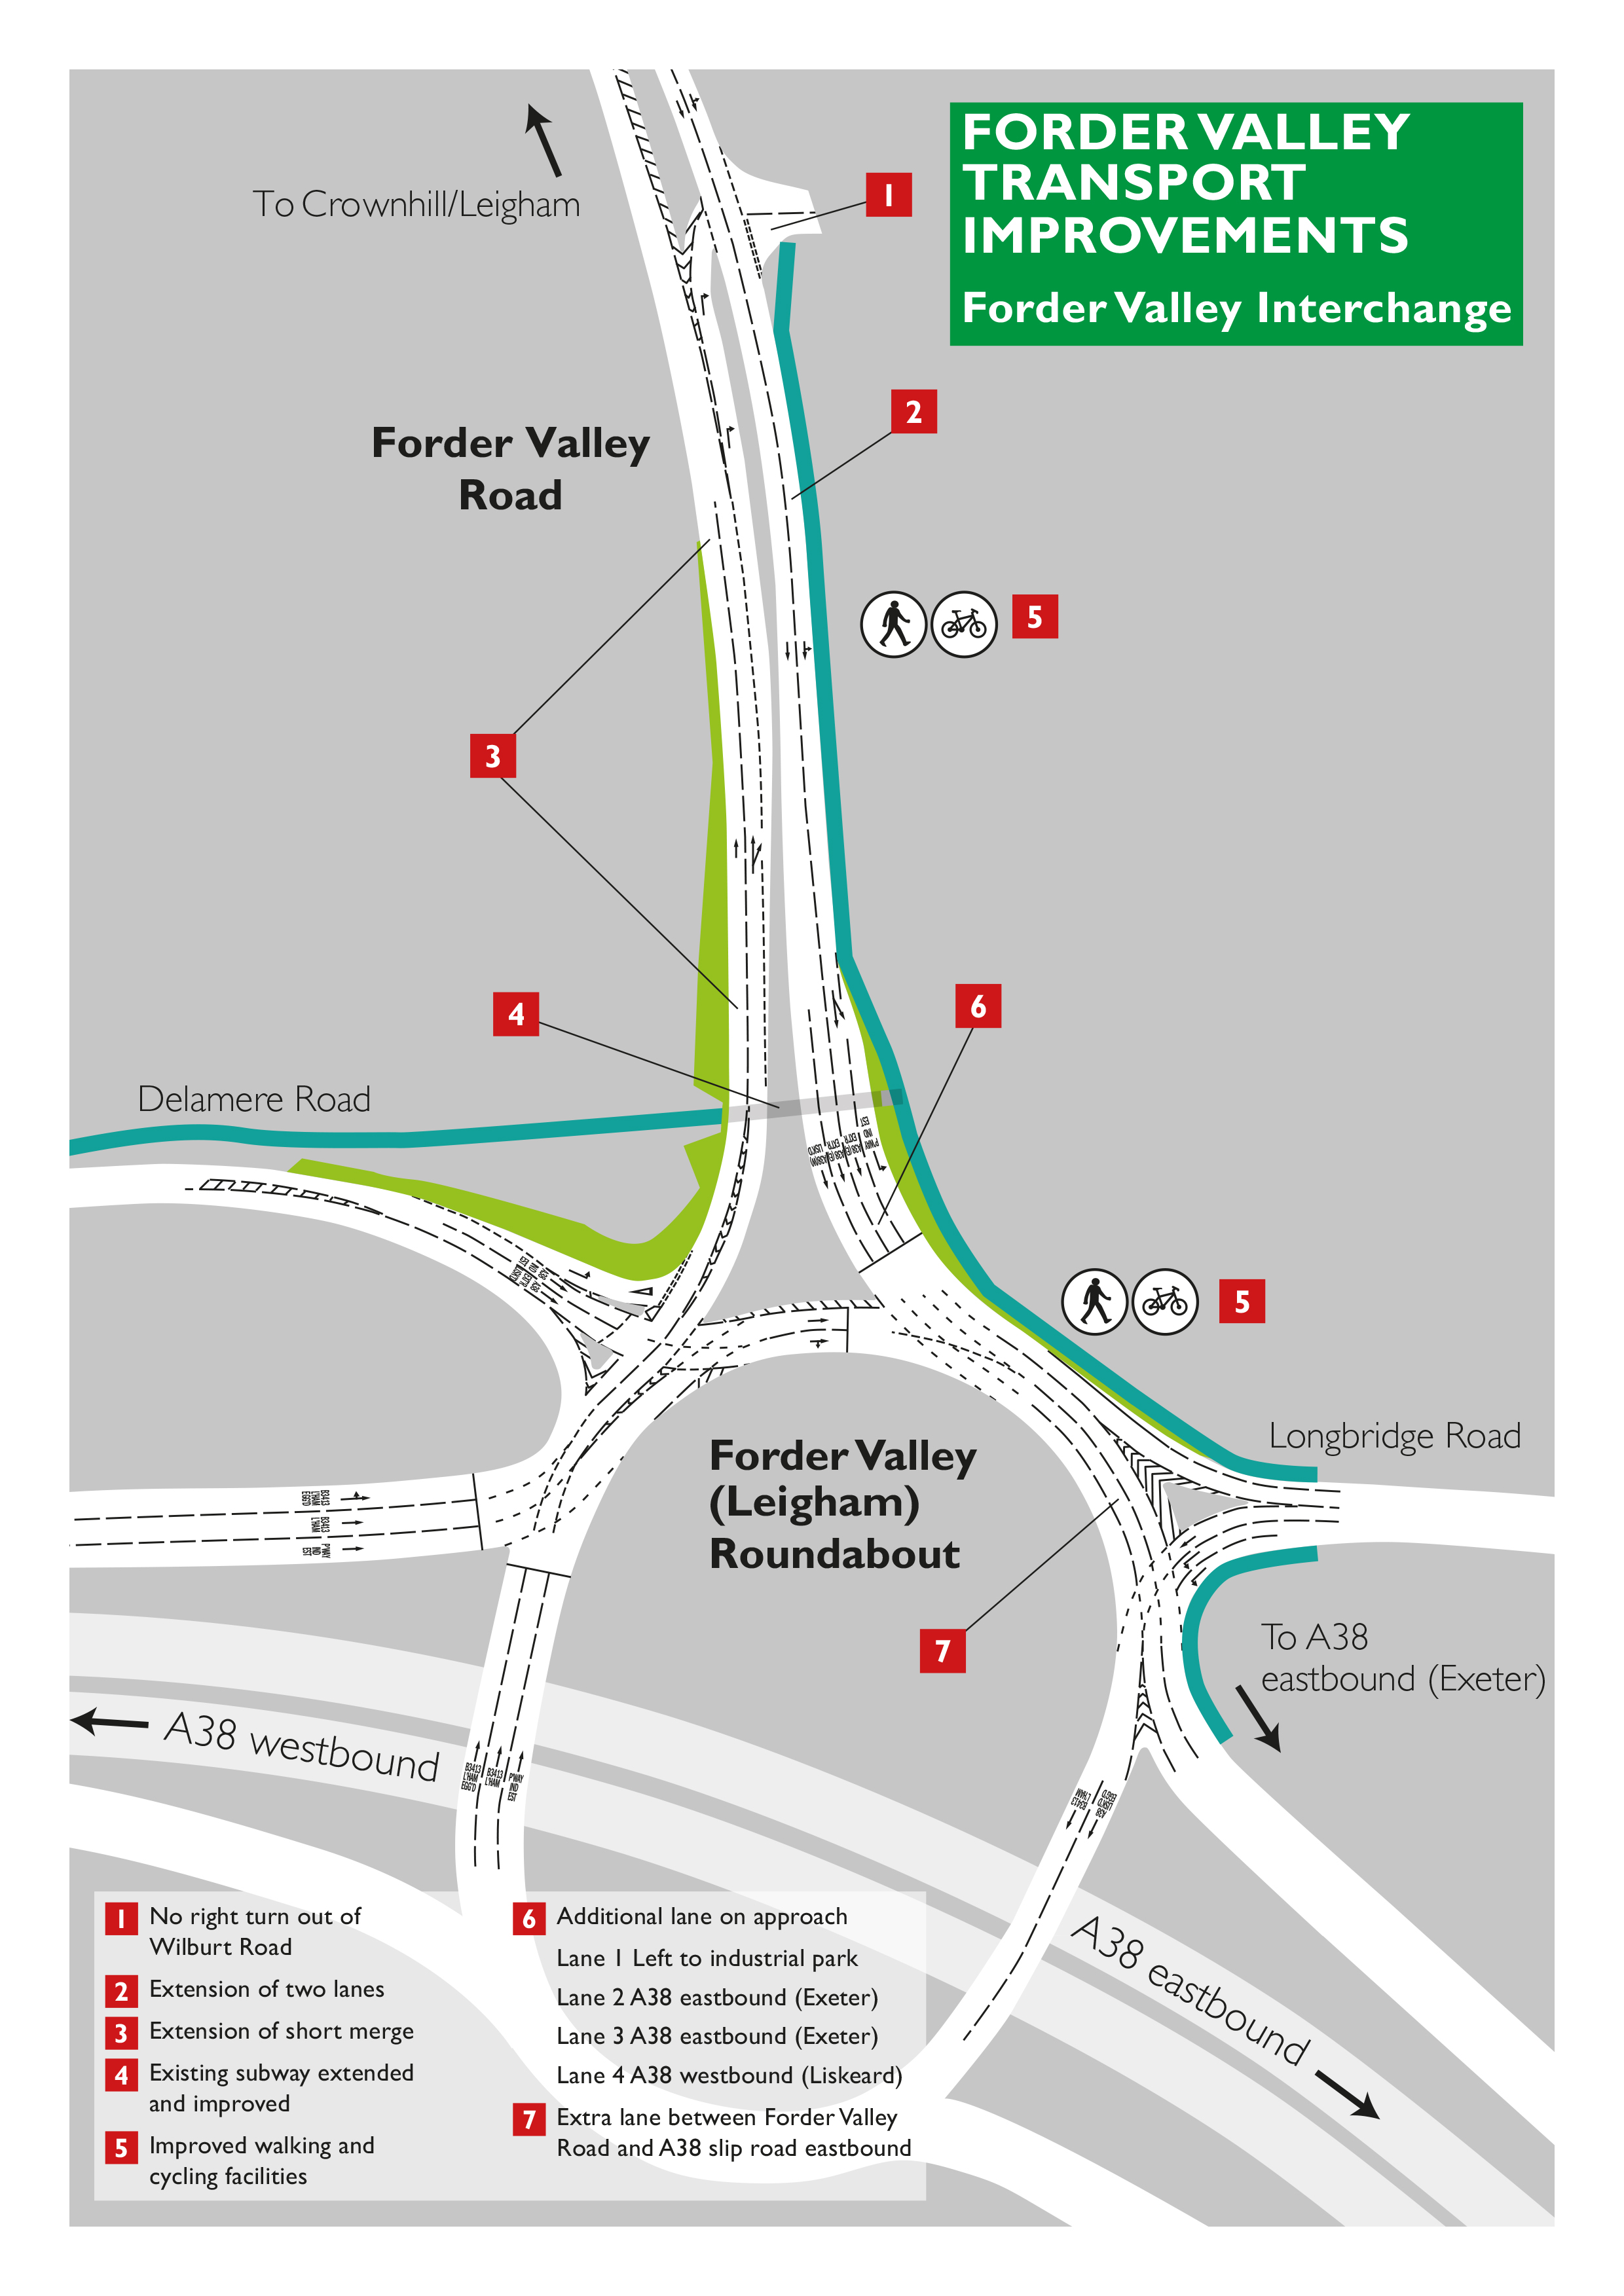 Infographic showing changes to roundabout